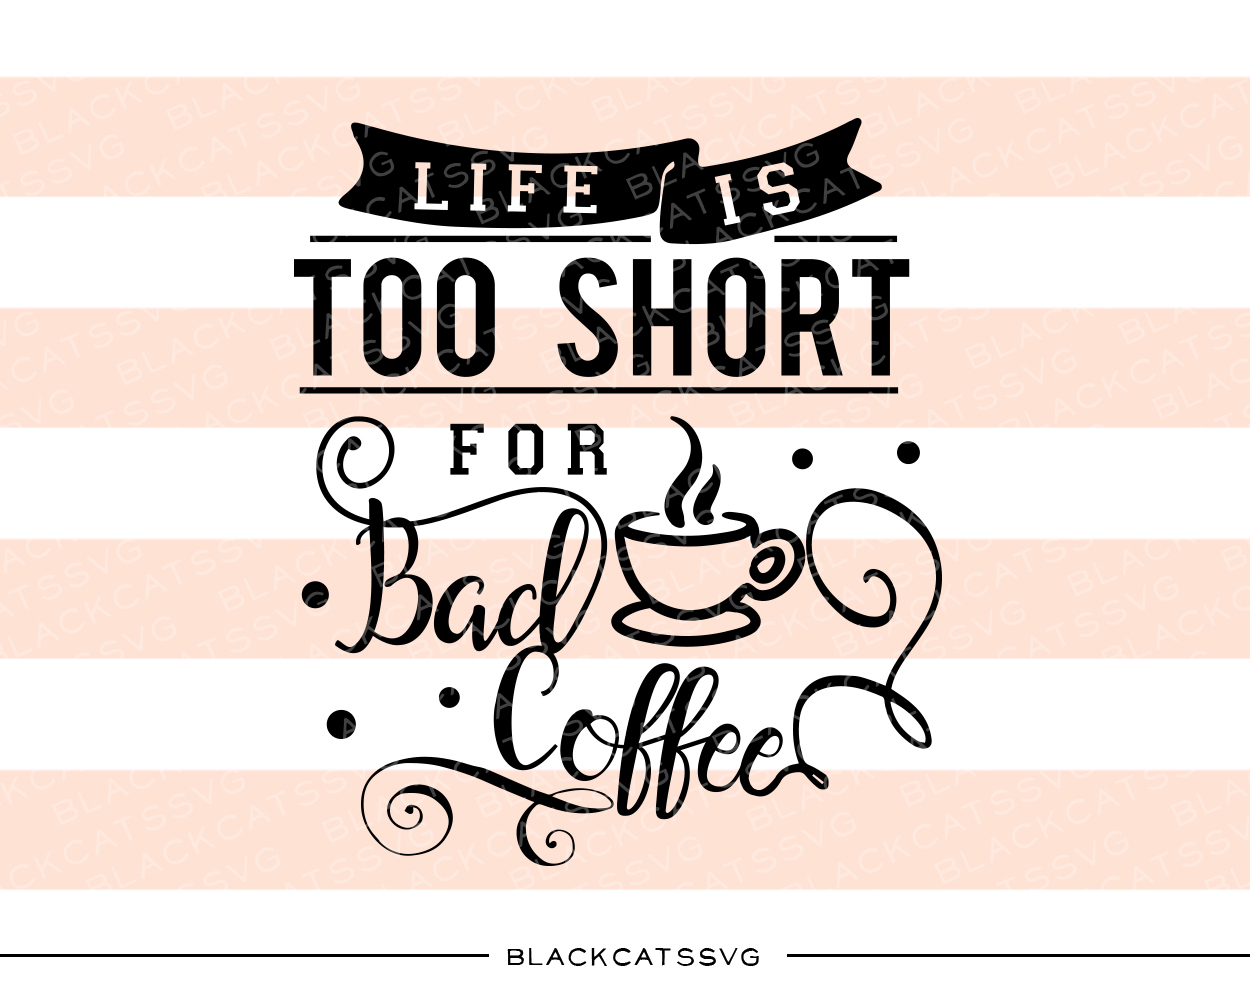 Download Free Life Is Too Short For Bad Coffee Svg Cut File By Blackcatssvg for Cricut Explore, Silhouette and other cutting machines.